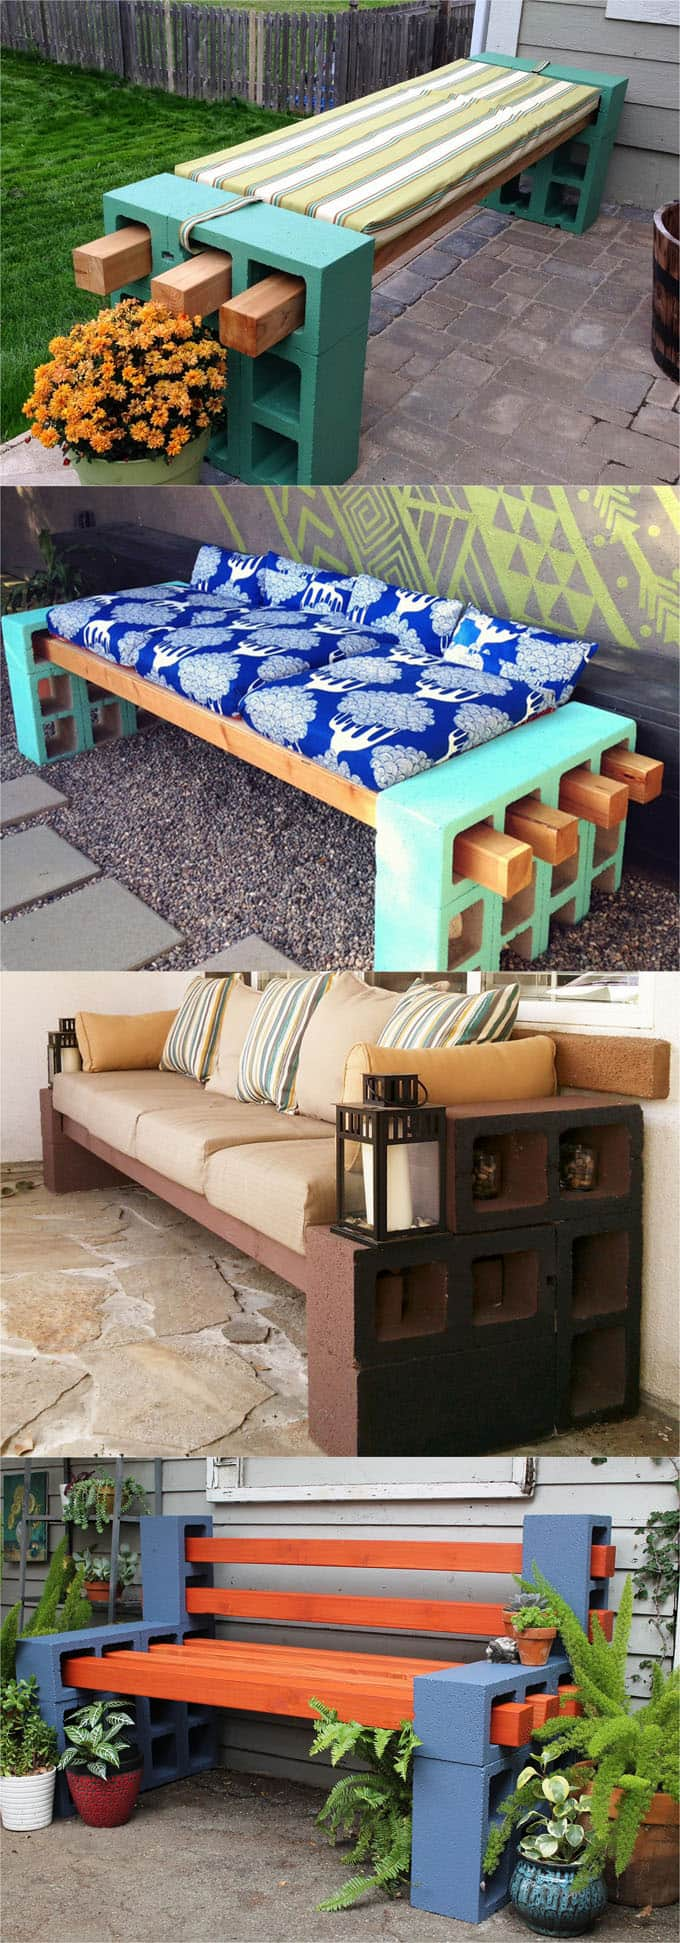 Swell 21 Gorgeous Easy Diy Benches Beginner Friendly Tutorials Gmtry Best Dining Table And Chair Ideas Images Gmtryco